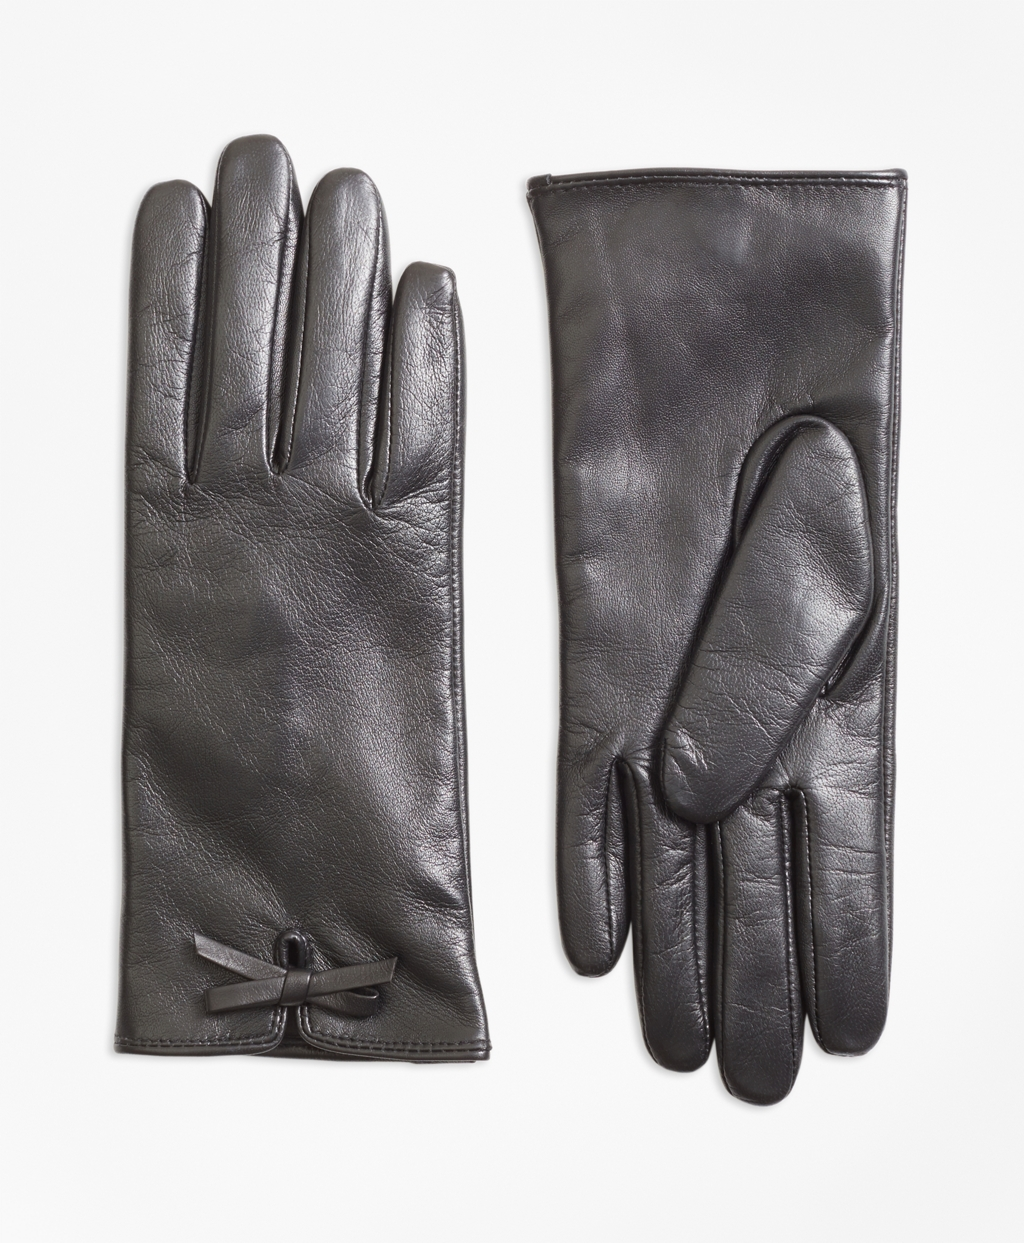 Victorian Gloves | Victorian Accessories Brooks Brothers Womens Bow-Trimmed Leather Gloves $58.00 AT vintagedancer.com